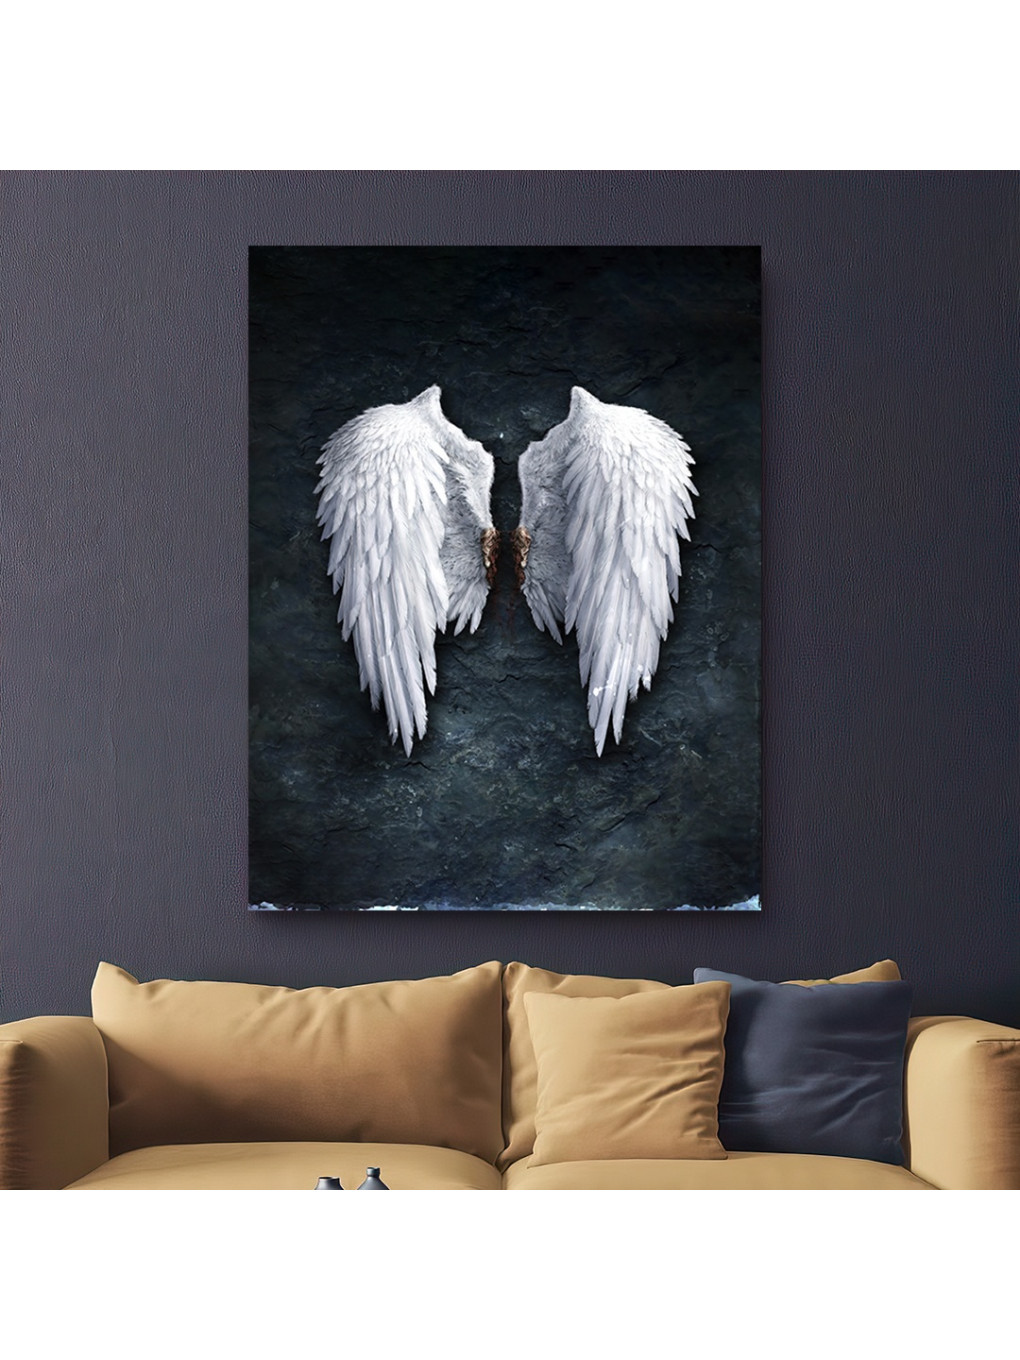 Celestial Wings_CEL142_2